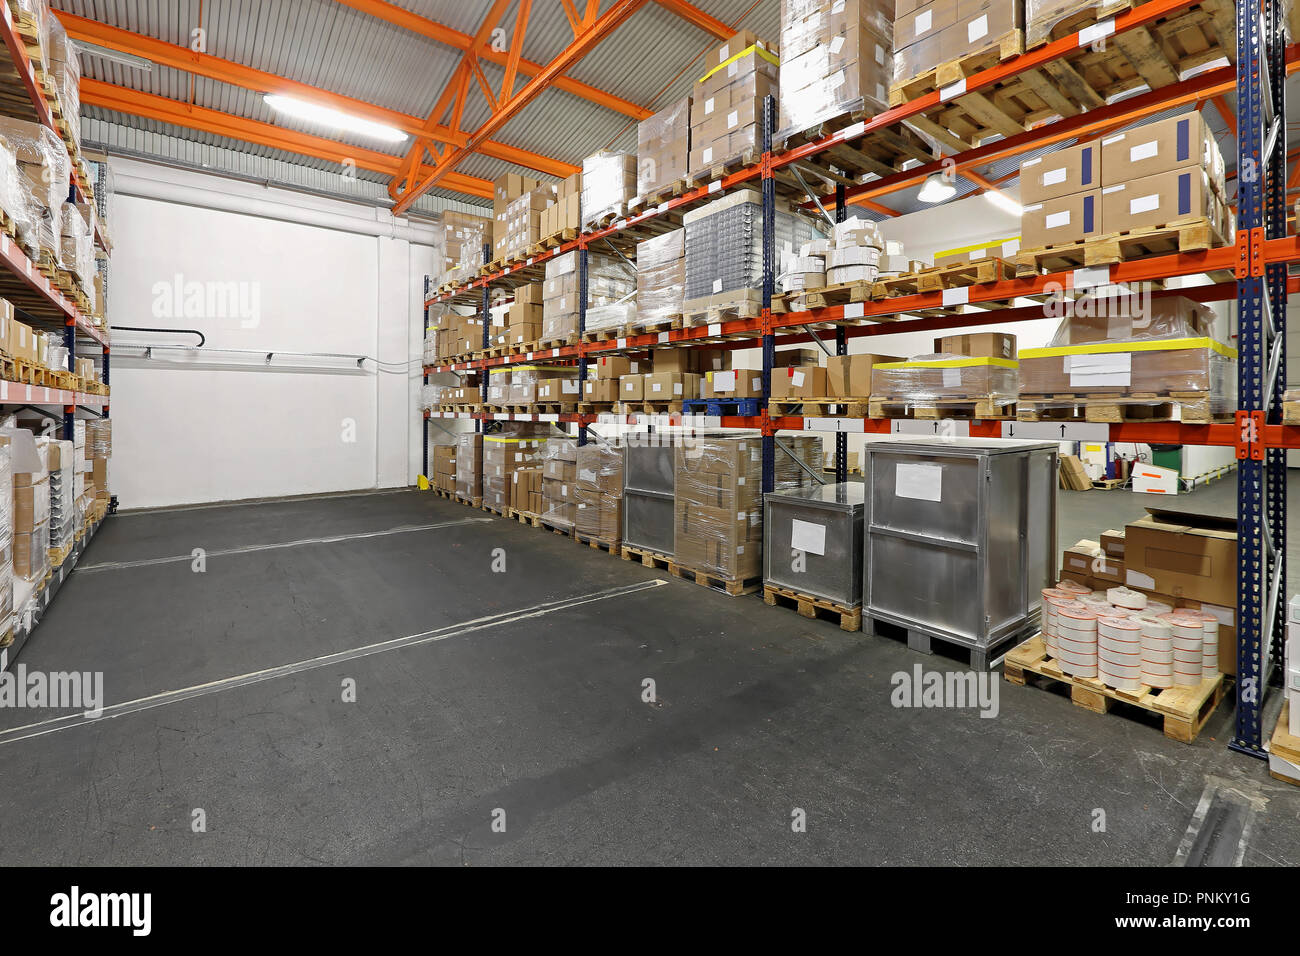 Shelves loaded with merchandise in wholesale warehouse Stock